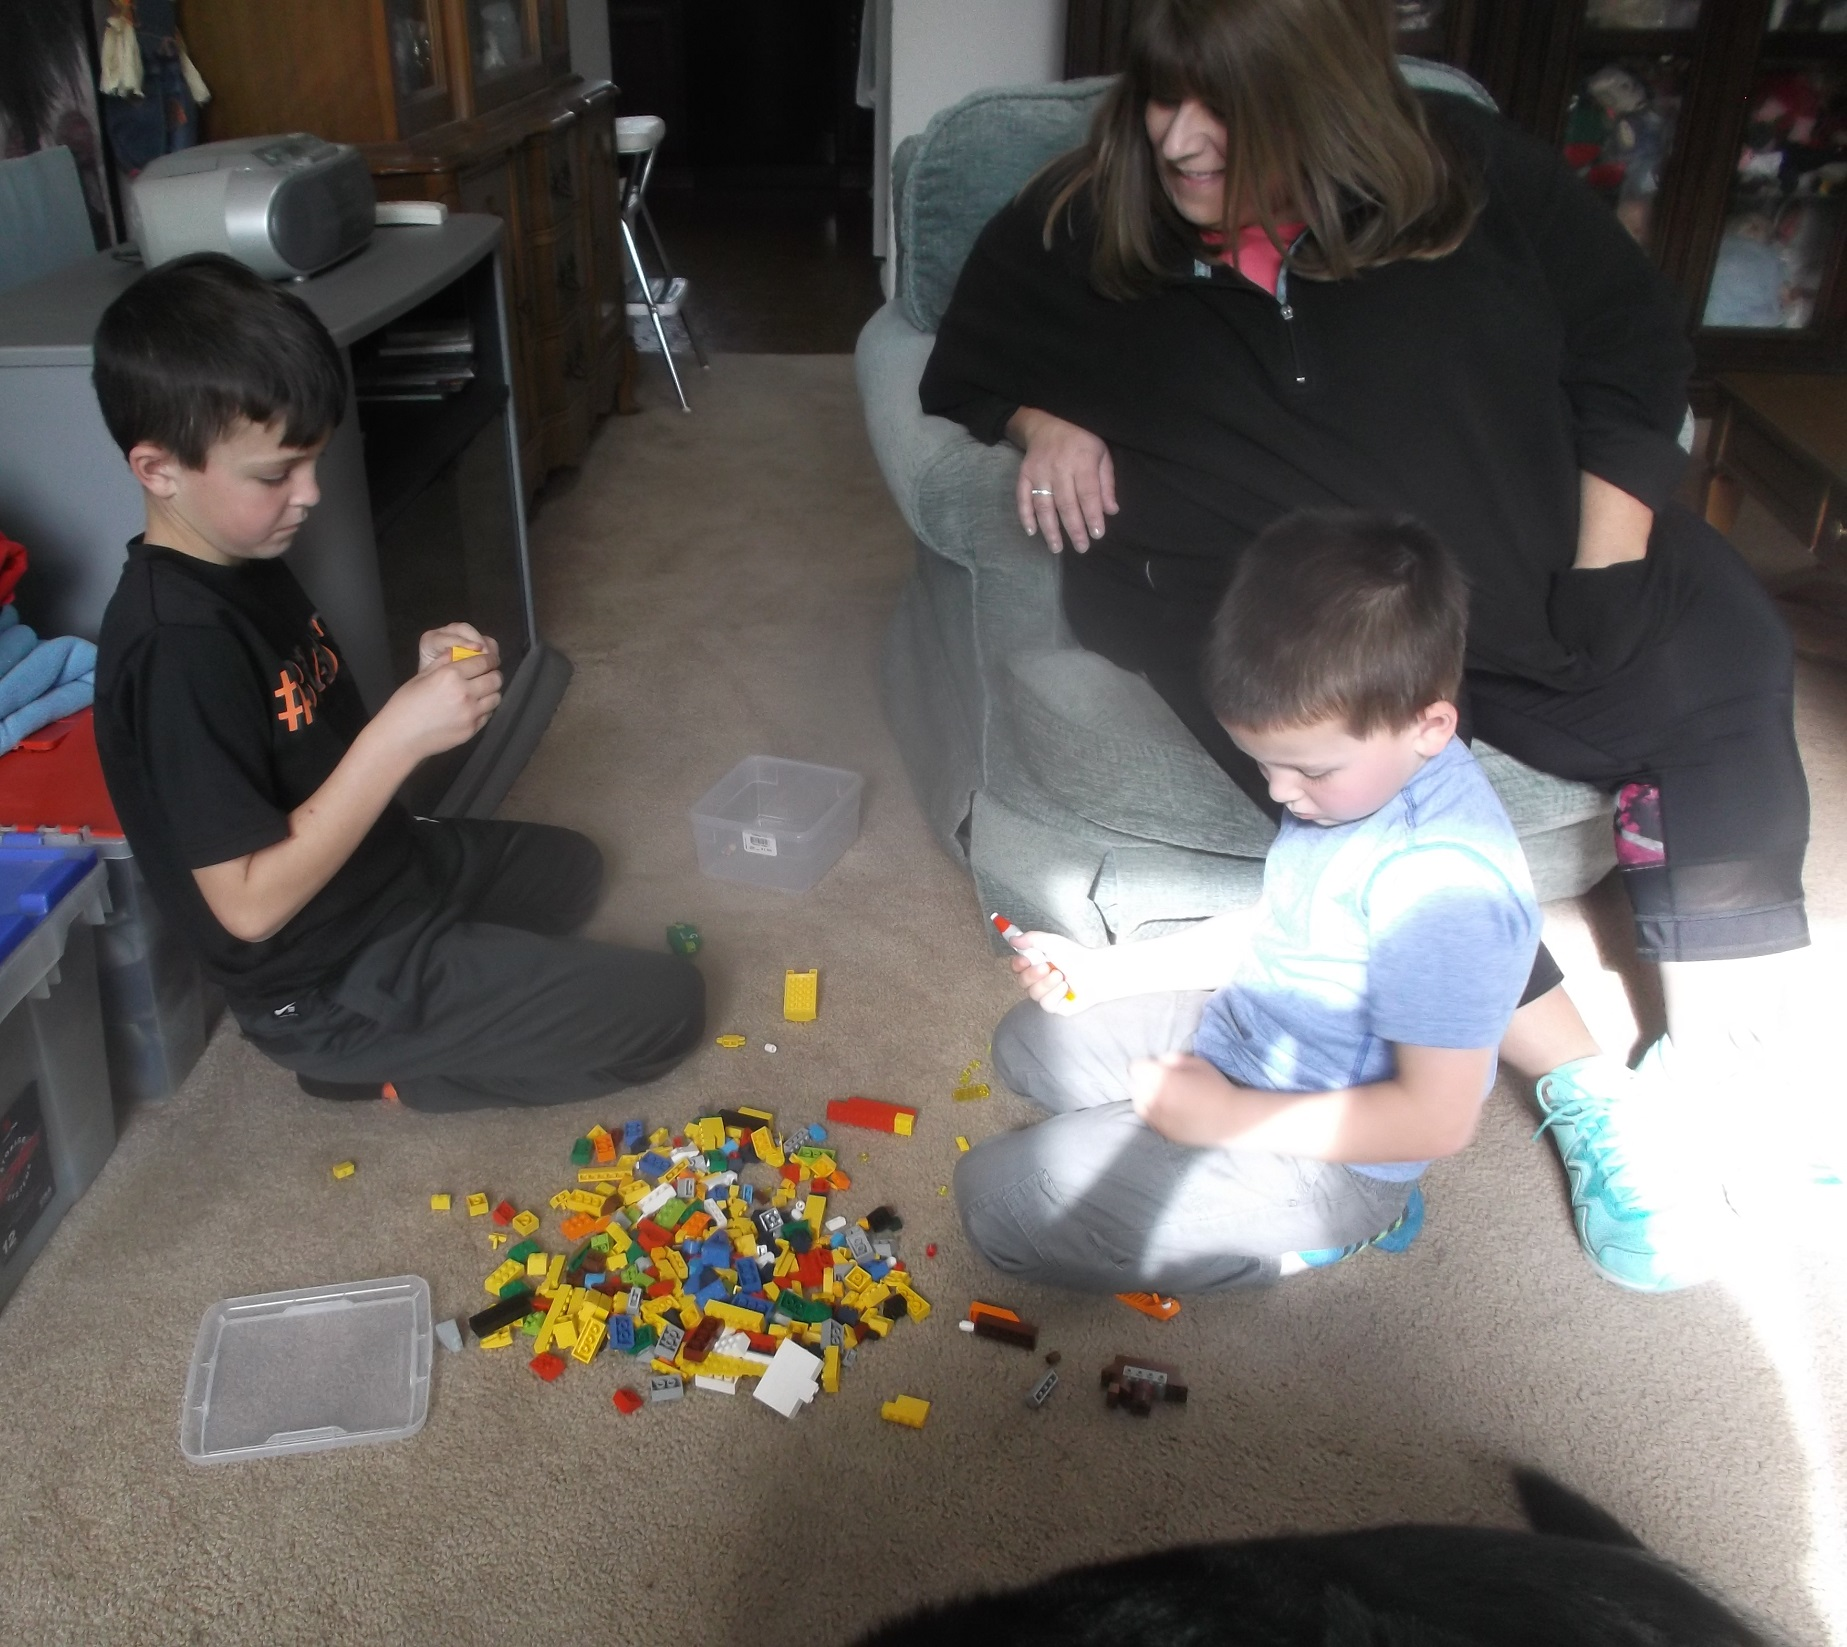 Photo I took of my nephews playing legos